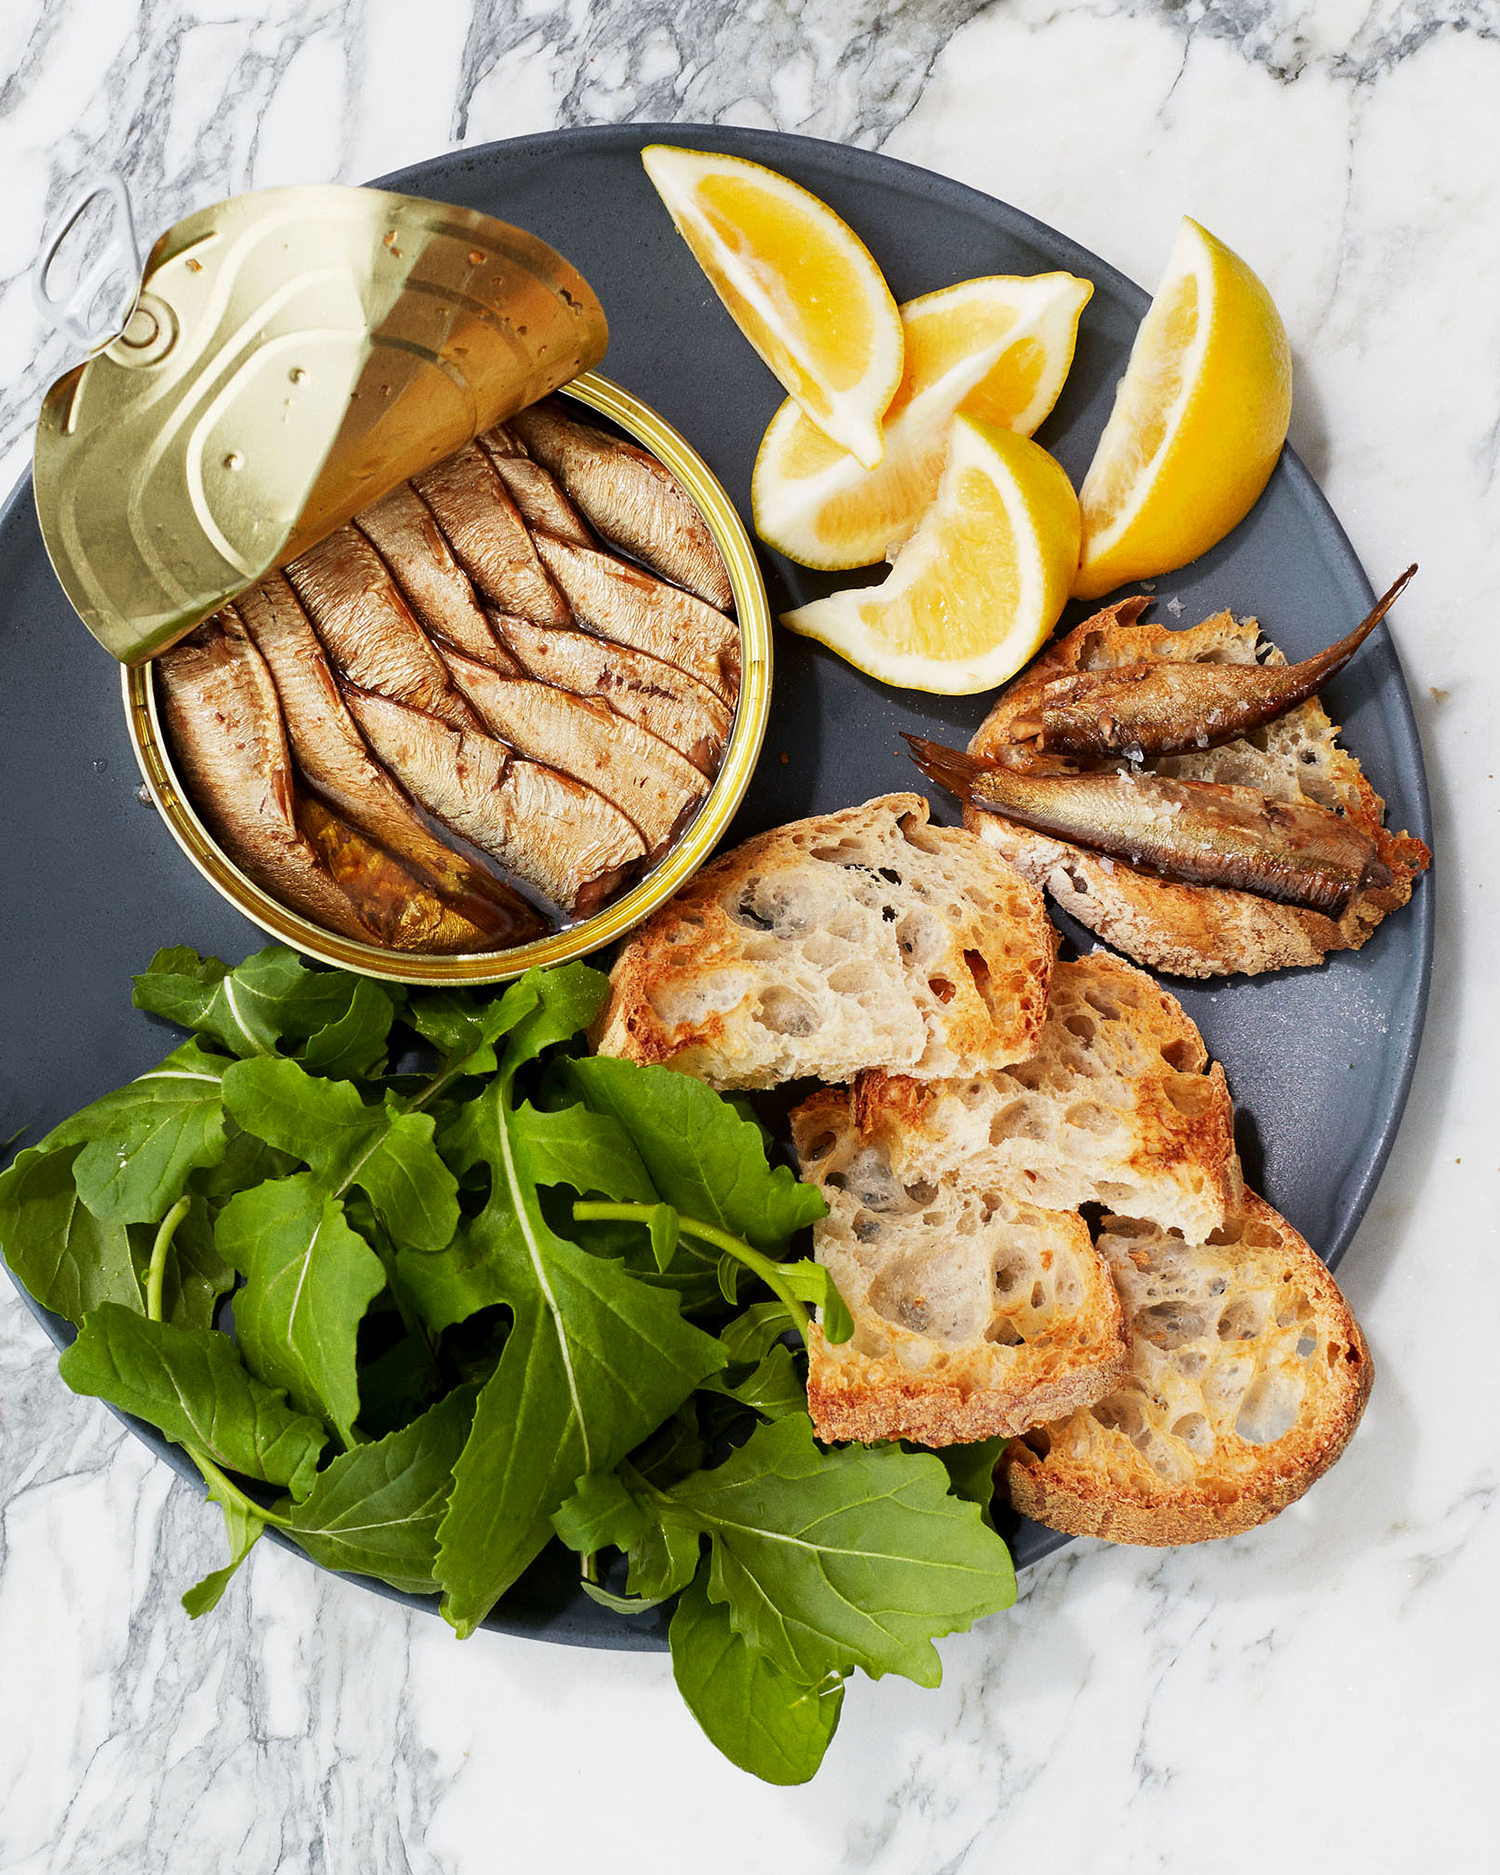 tinned fish on toast with greens and lemon